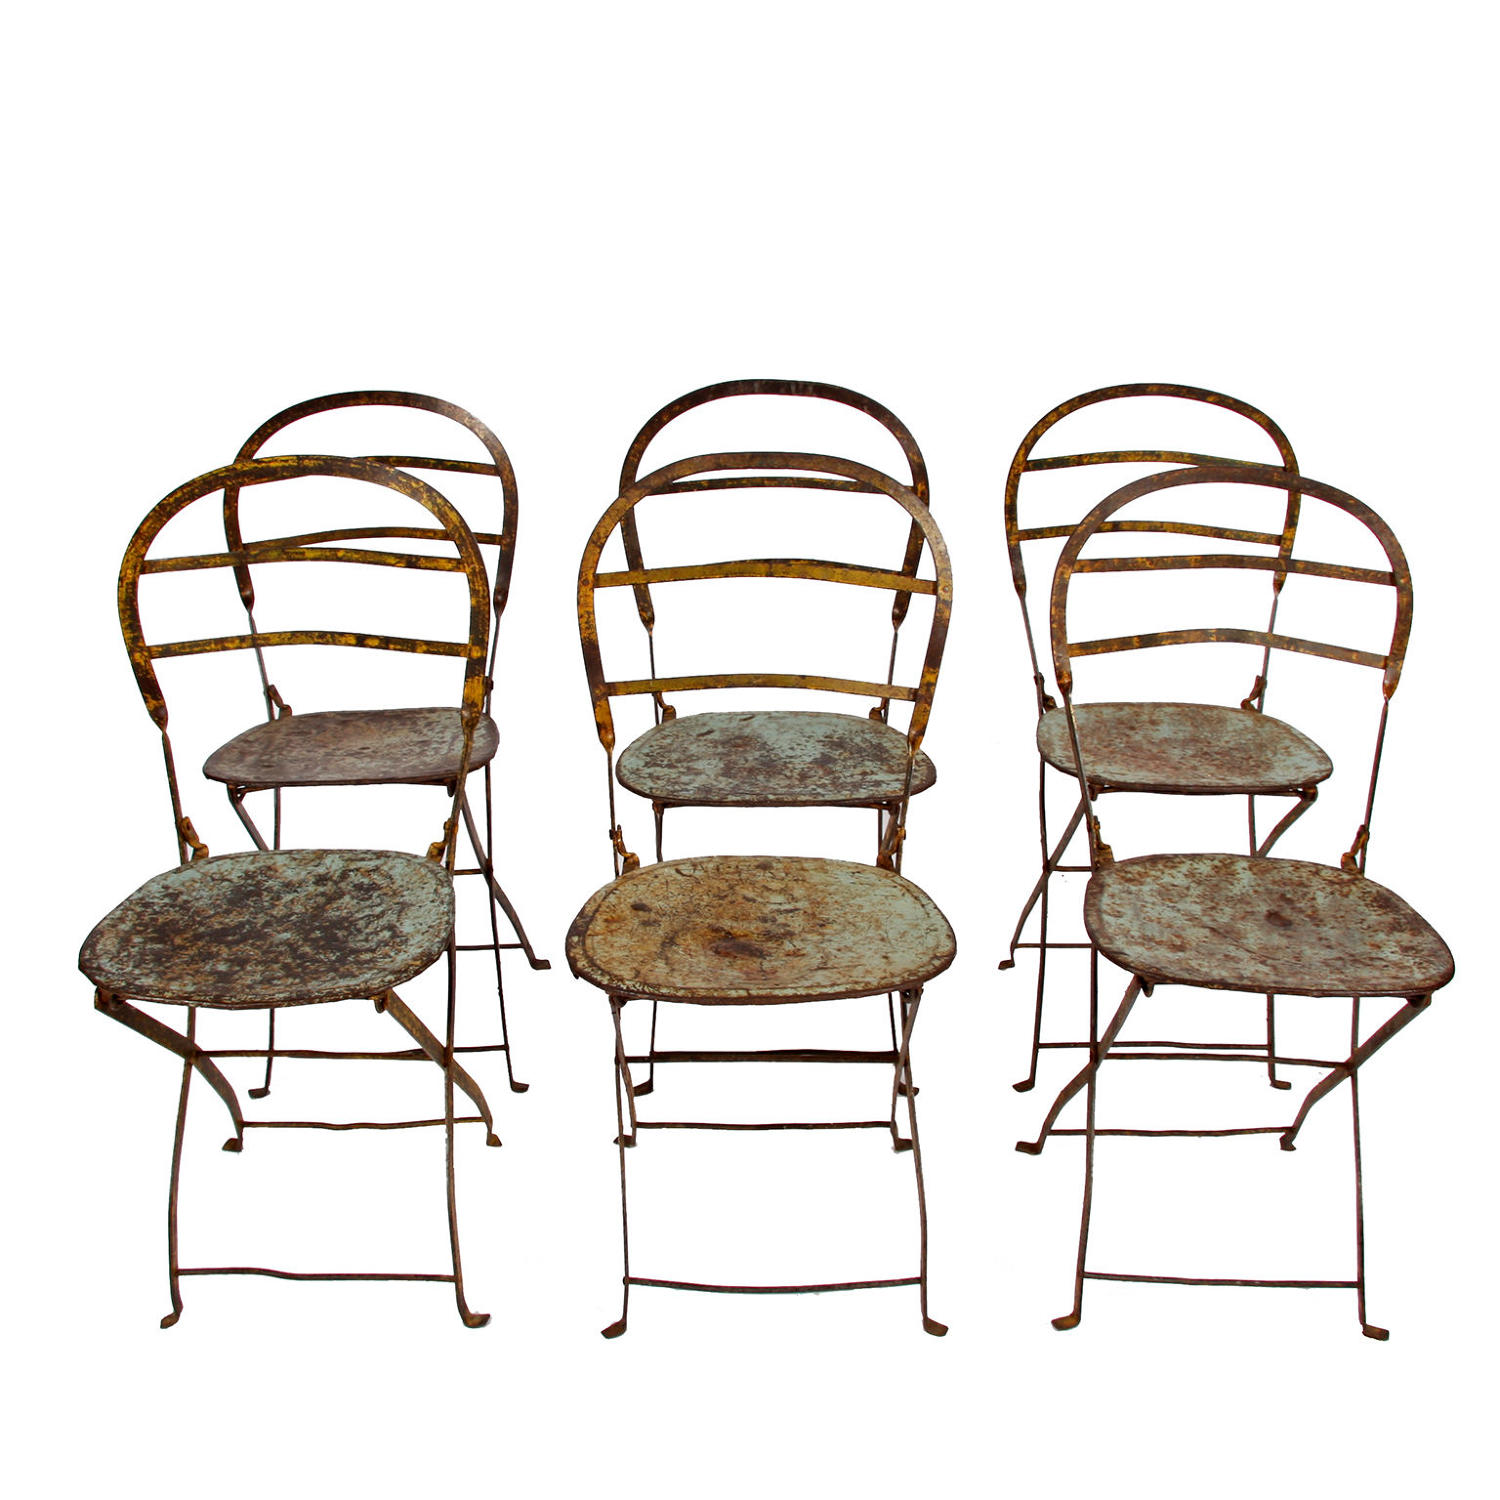 Set of Six Wrought Iron & Steel Folding Chairs